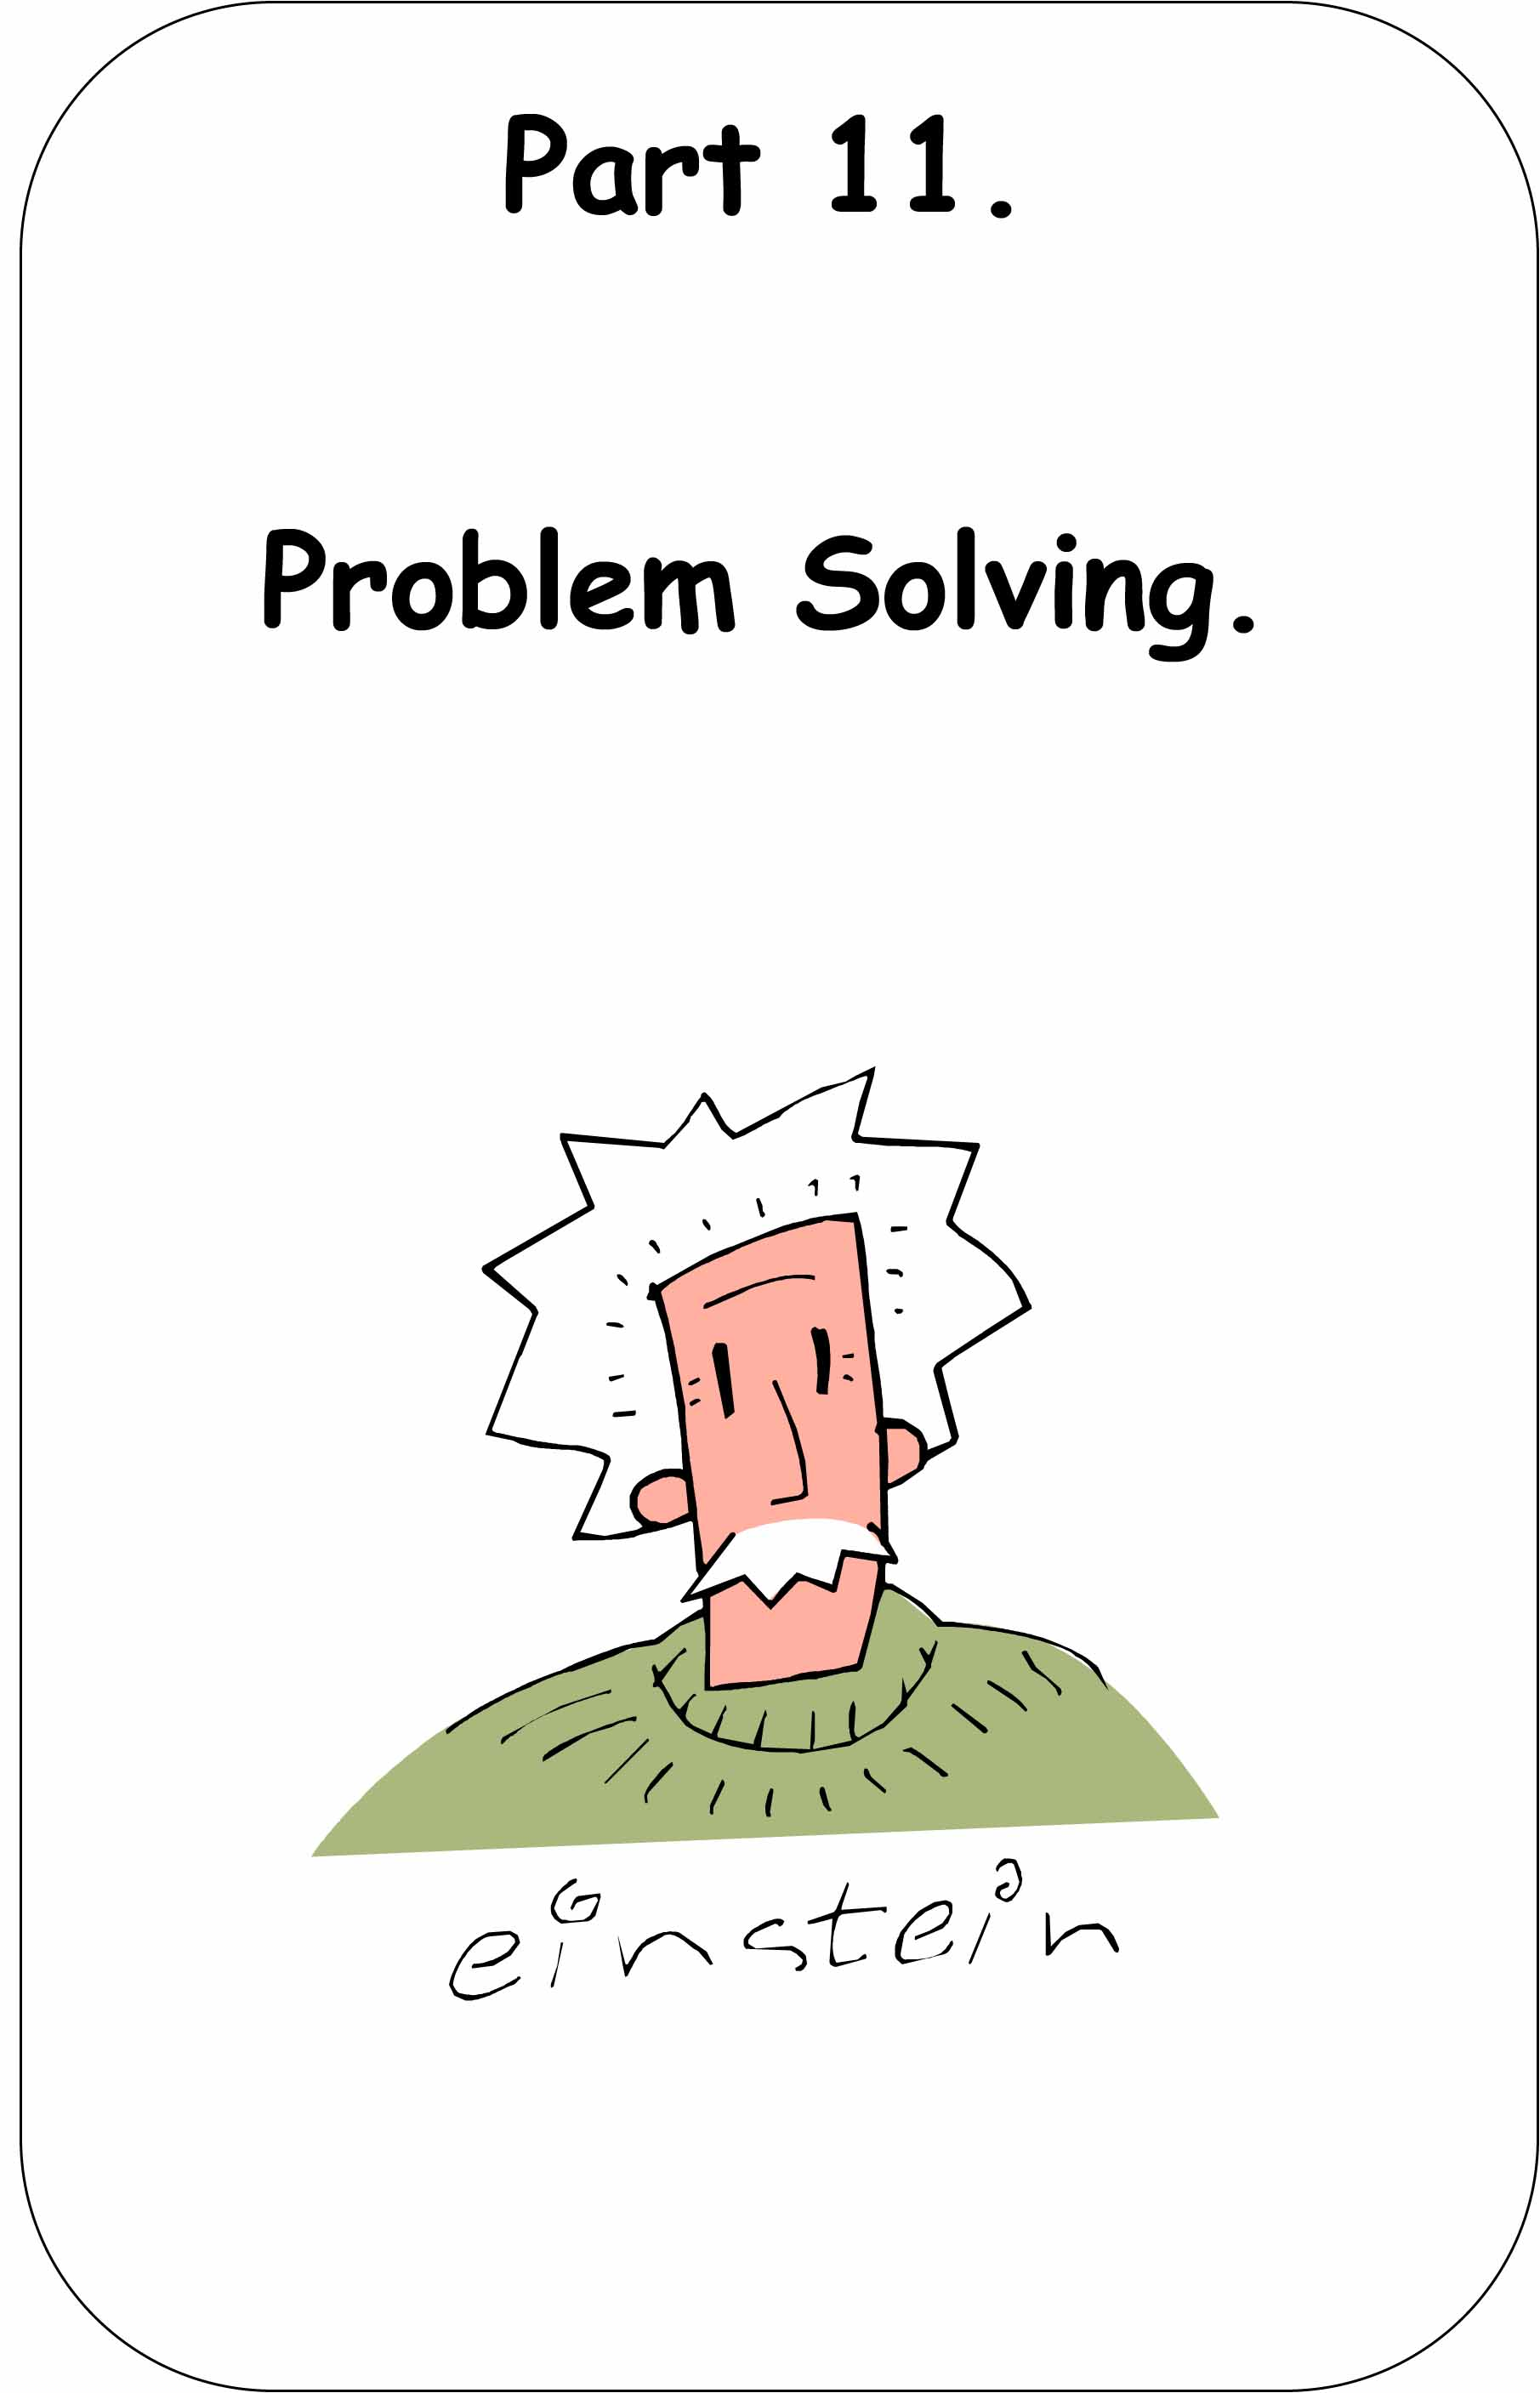 the psychology of problem solving These chapters focus on decision making, problem solving, expertise, and the role of motivation in the thinking process each chapter includes handy chapter summaries, example questions to test knowledge, and suggested further reading this book is perfect for those taking the psychology of thinking module, as well as.